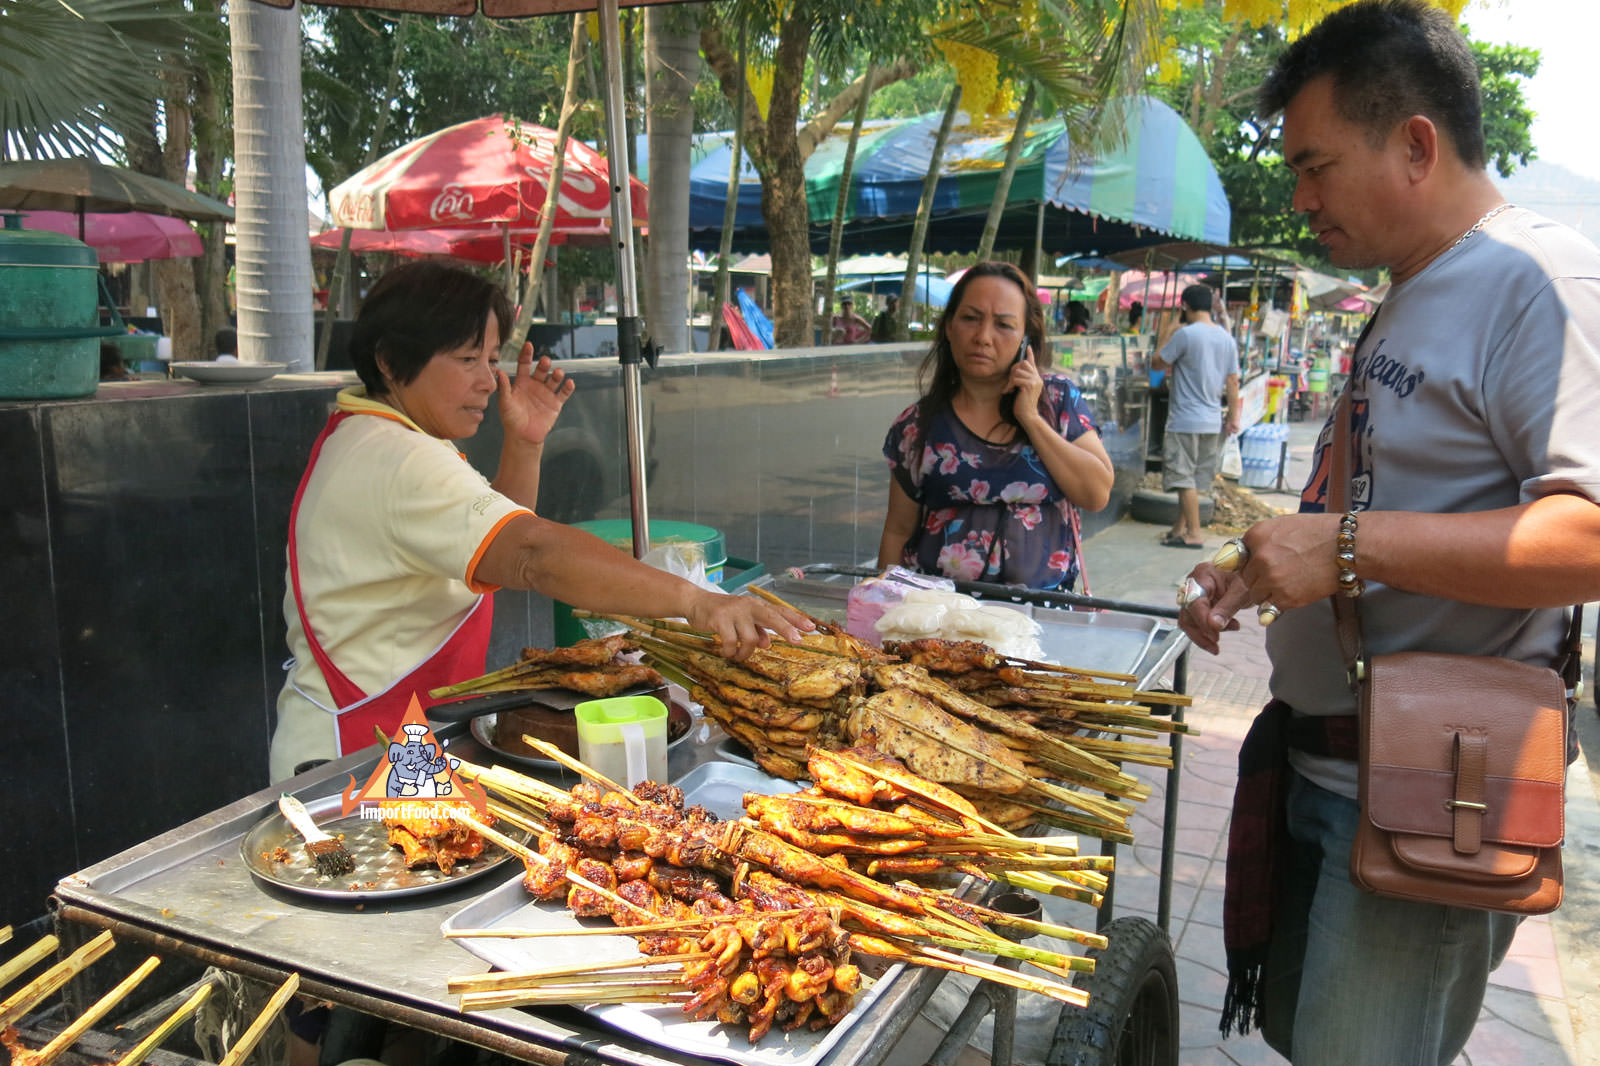 Vendor Talks About Gai Yang Importfood